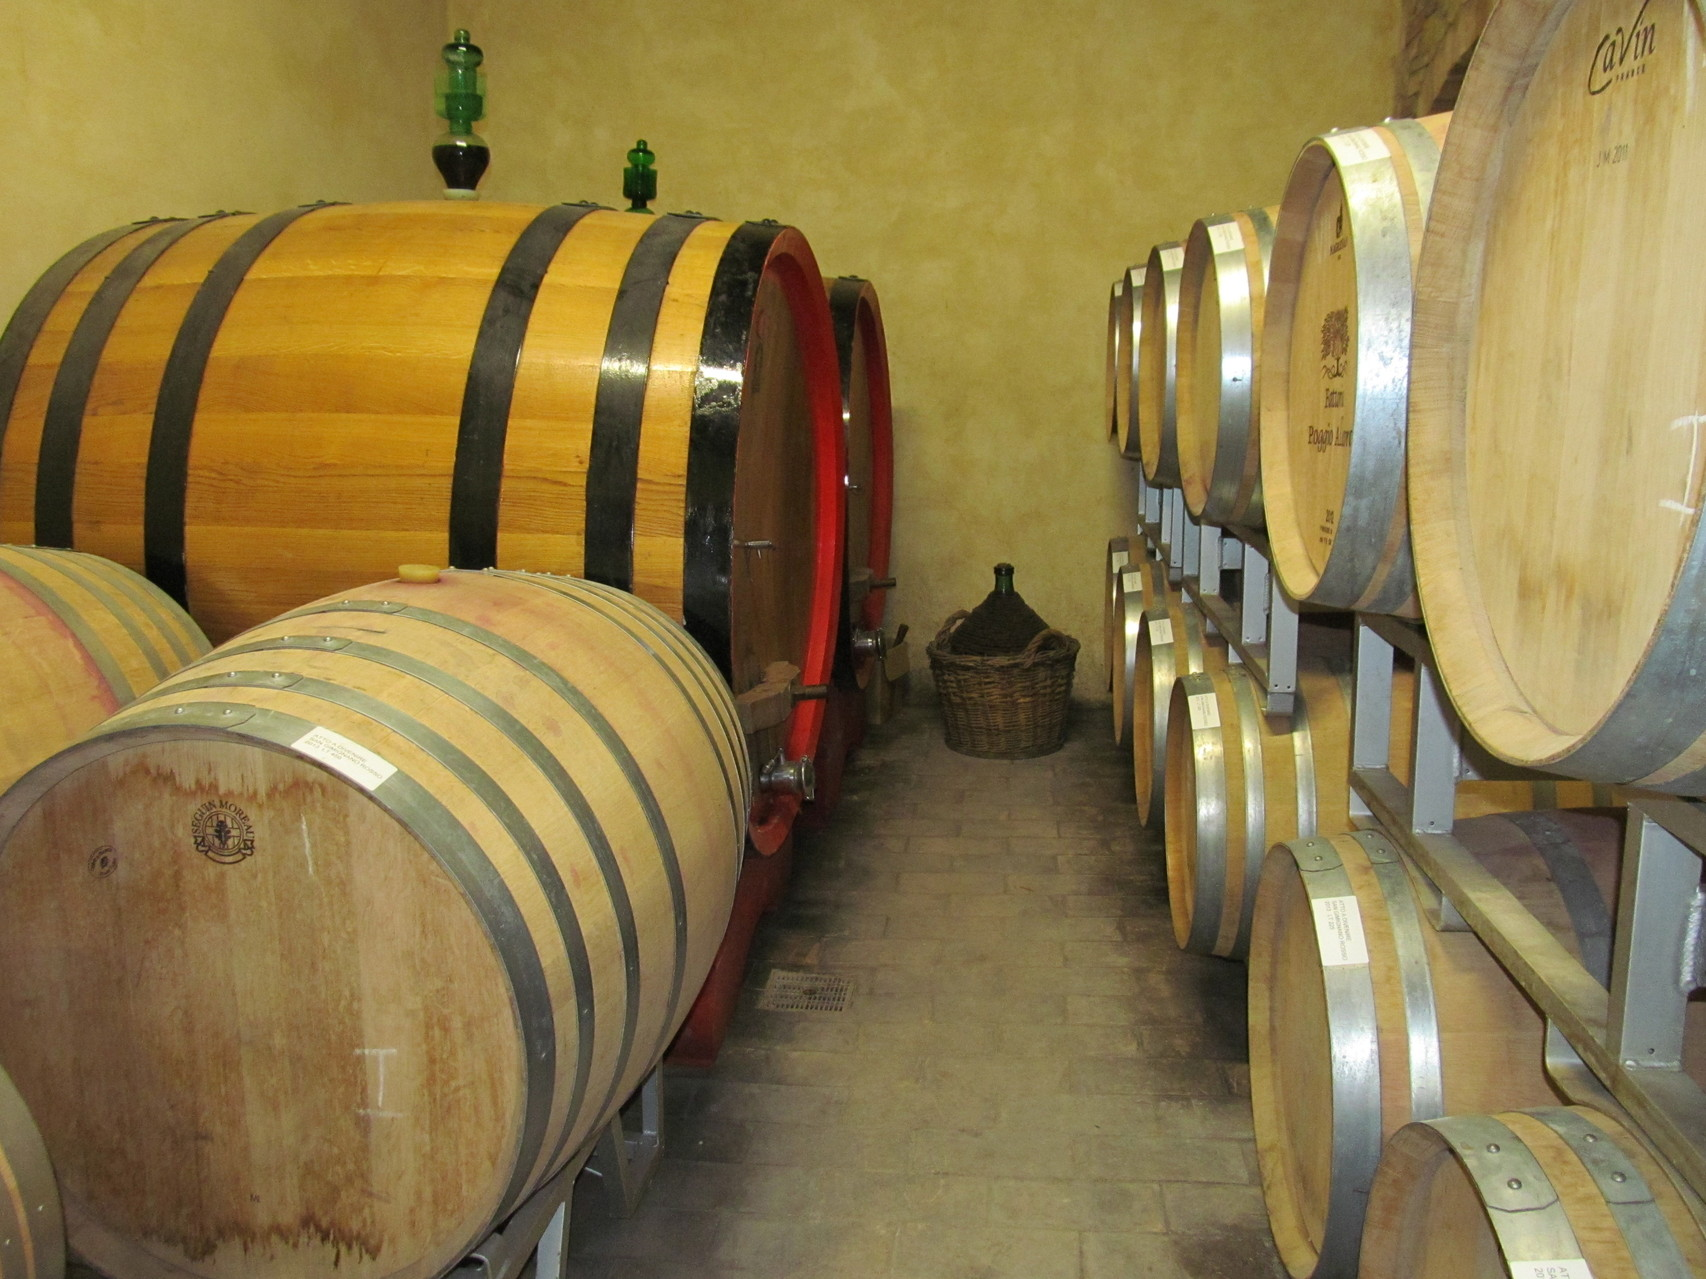 Old wine cellar with barrels for aging wine